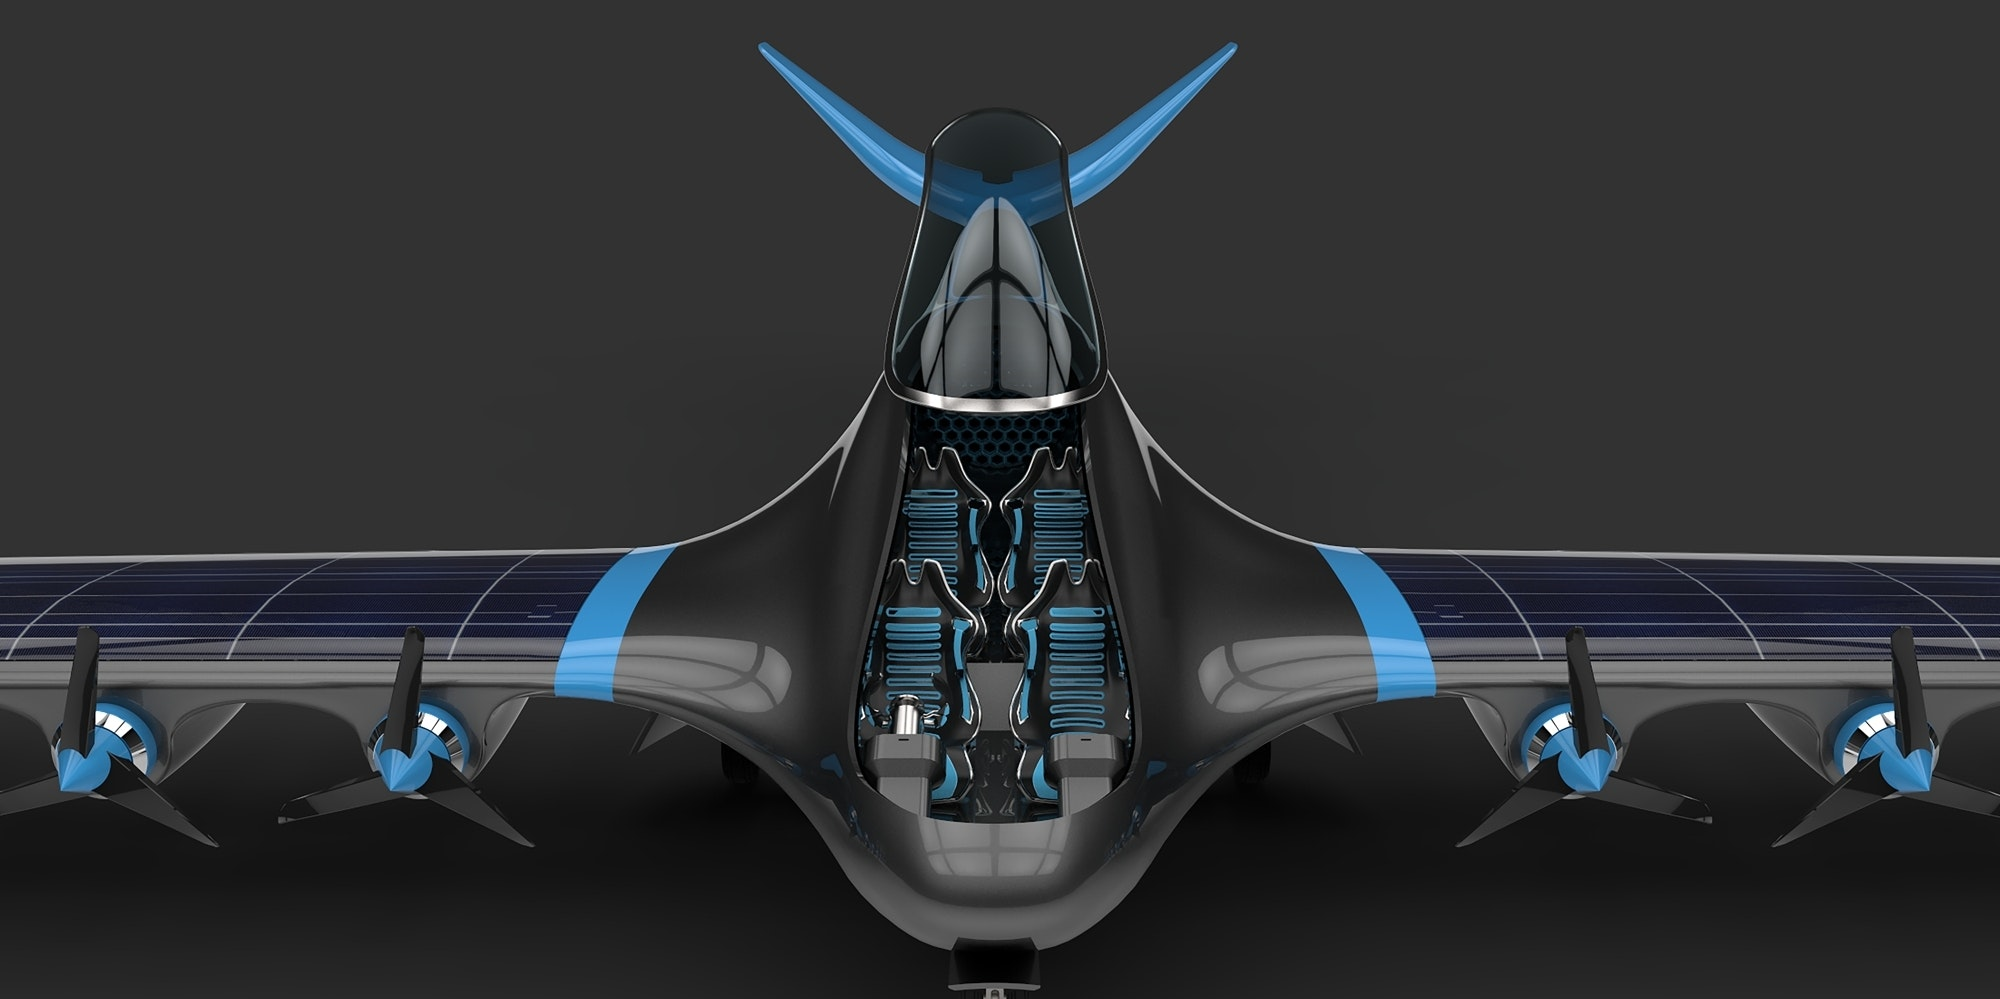 Meet the Electric, Hydrogen, Zero-Emissions Plane Set to Fly by 2025